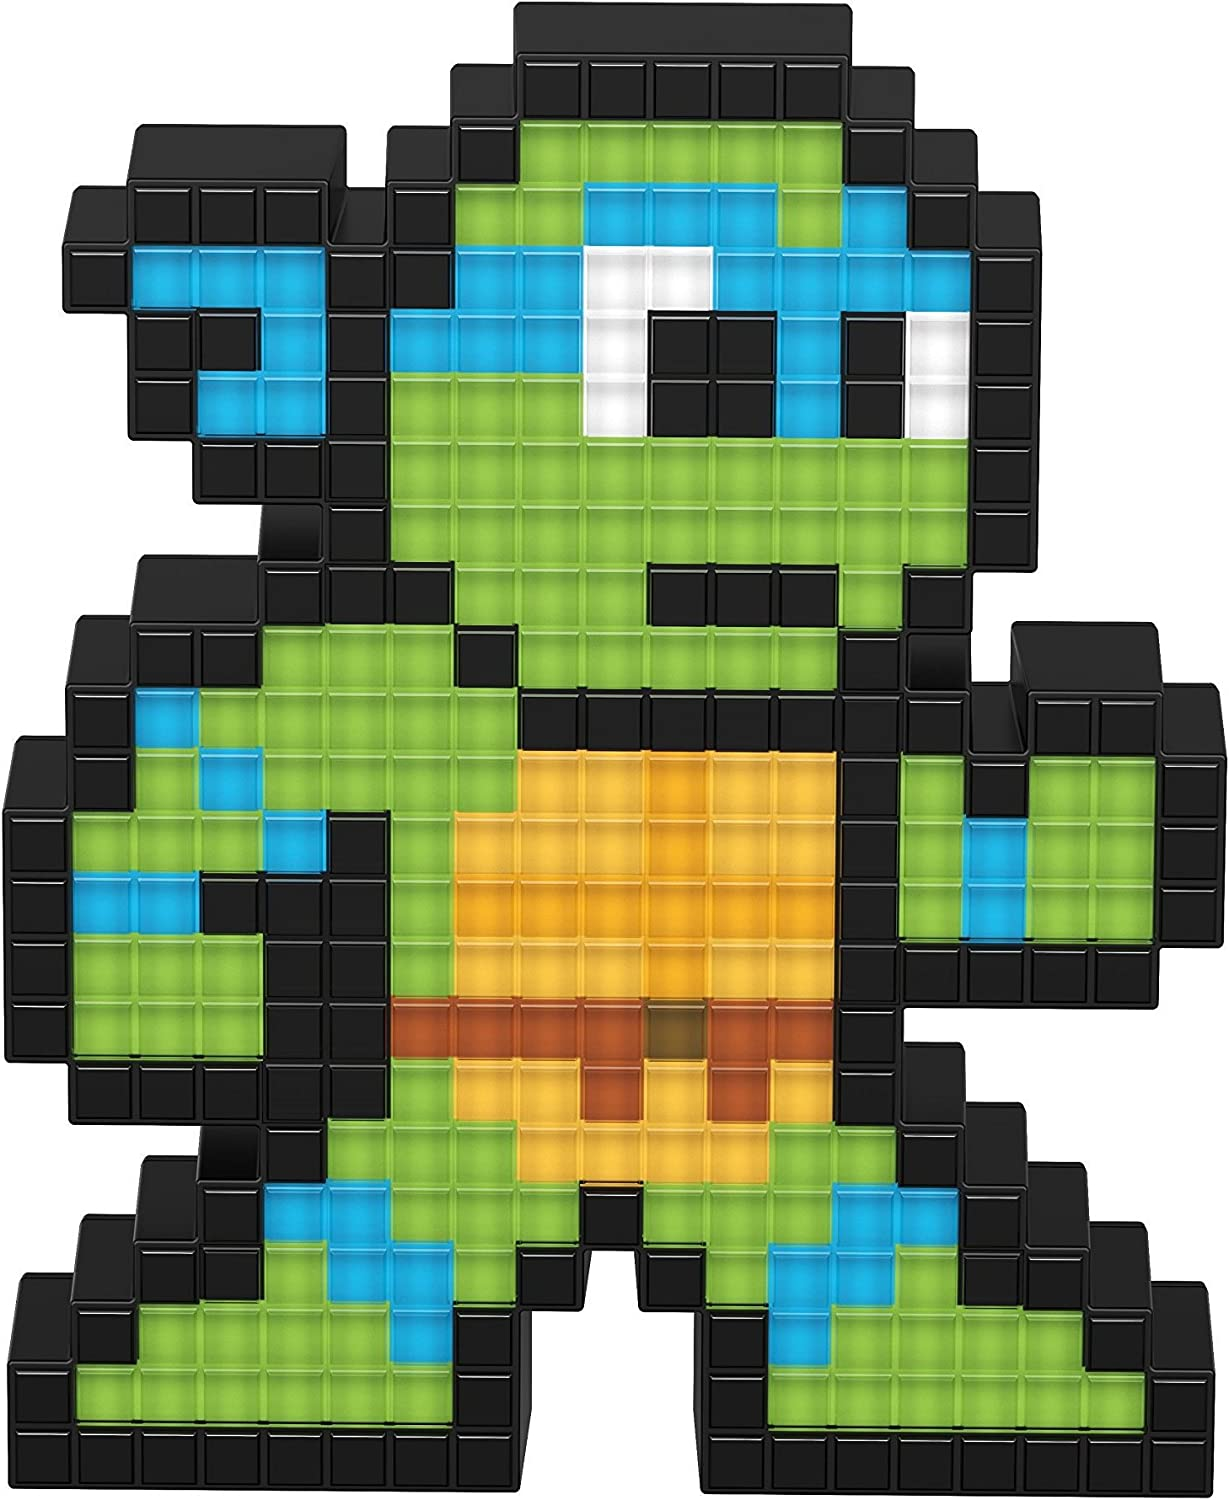 Amazon.com: PDP Pixel Pals Teenage Mutant Ninja Turtles ...